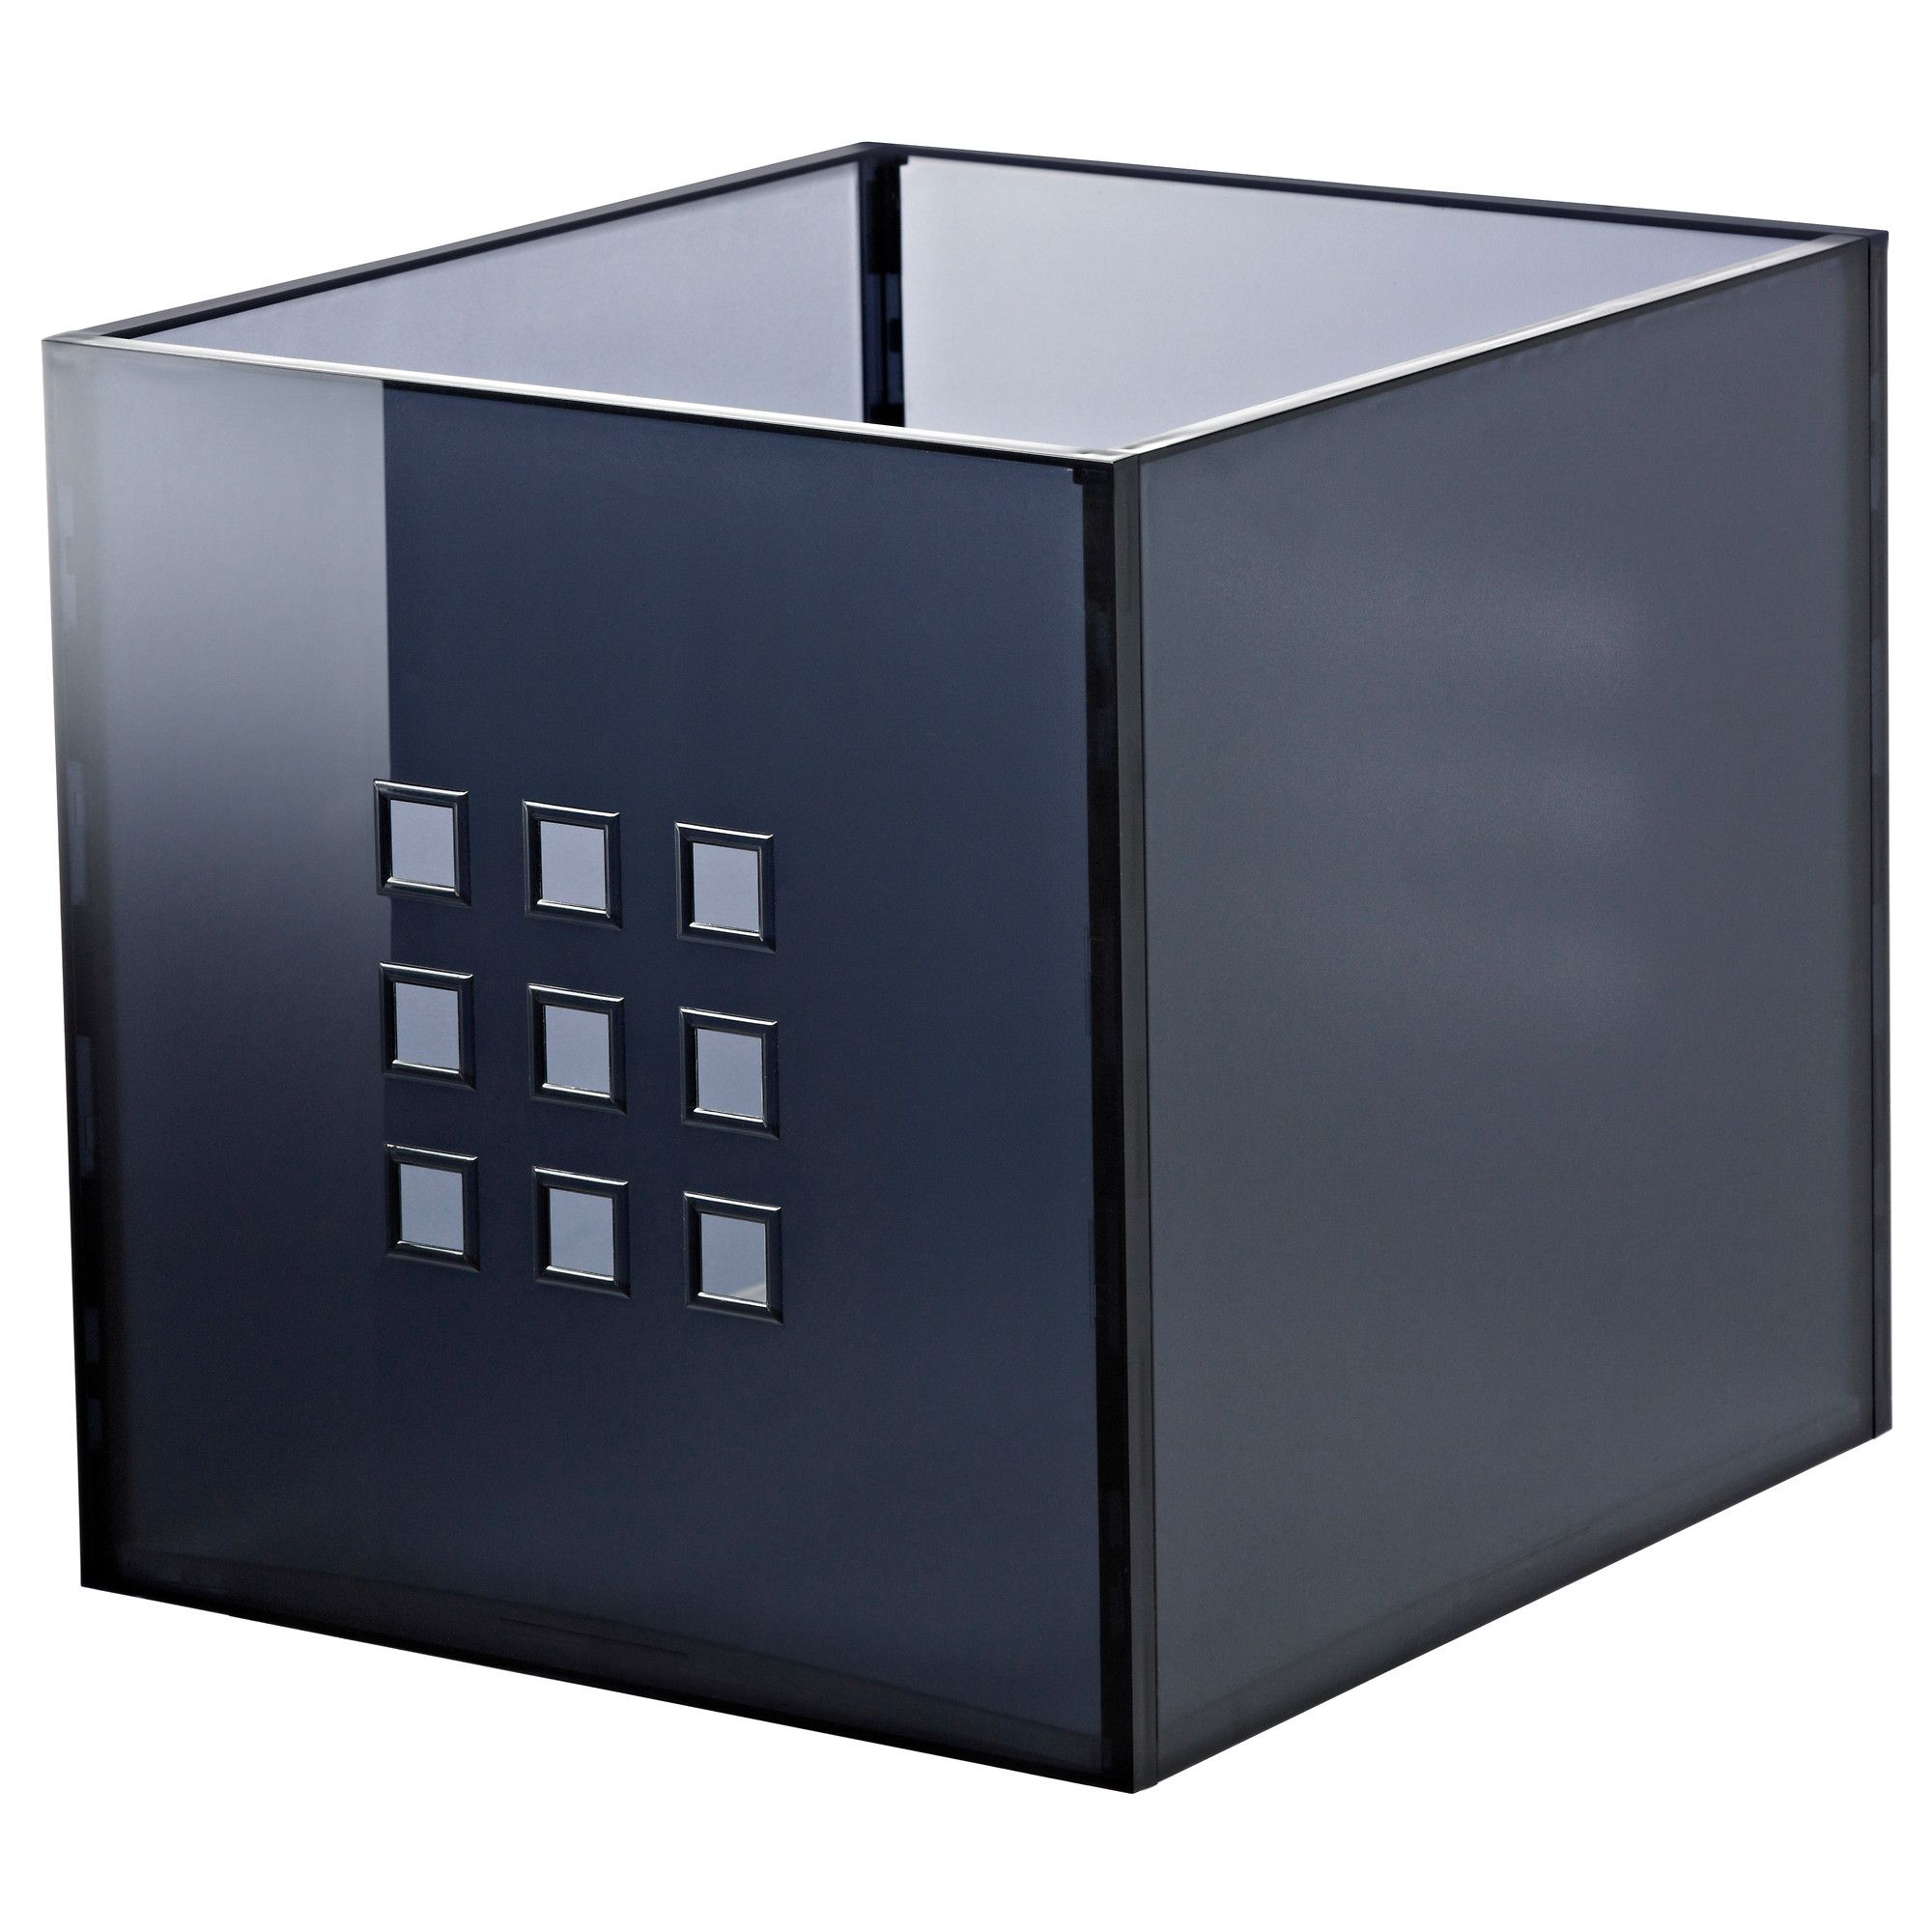 "LEKMAN Box dark gray 13x14 ½x13 "" Ikea storage boxes"